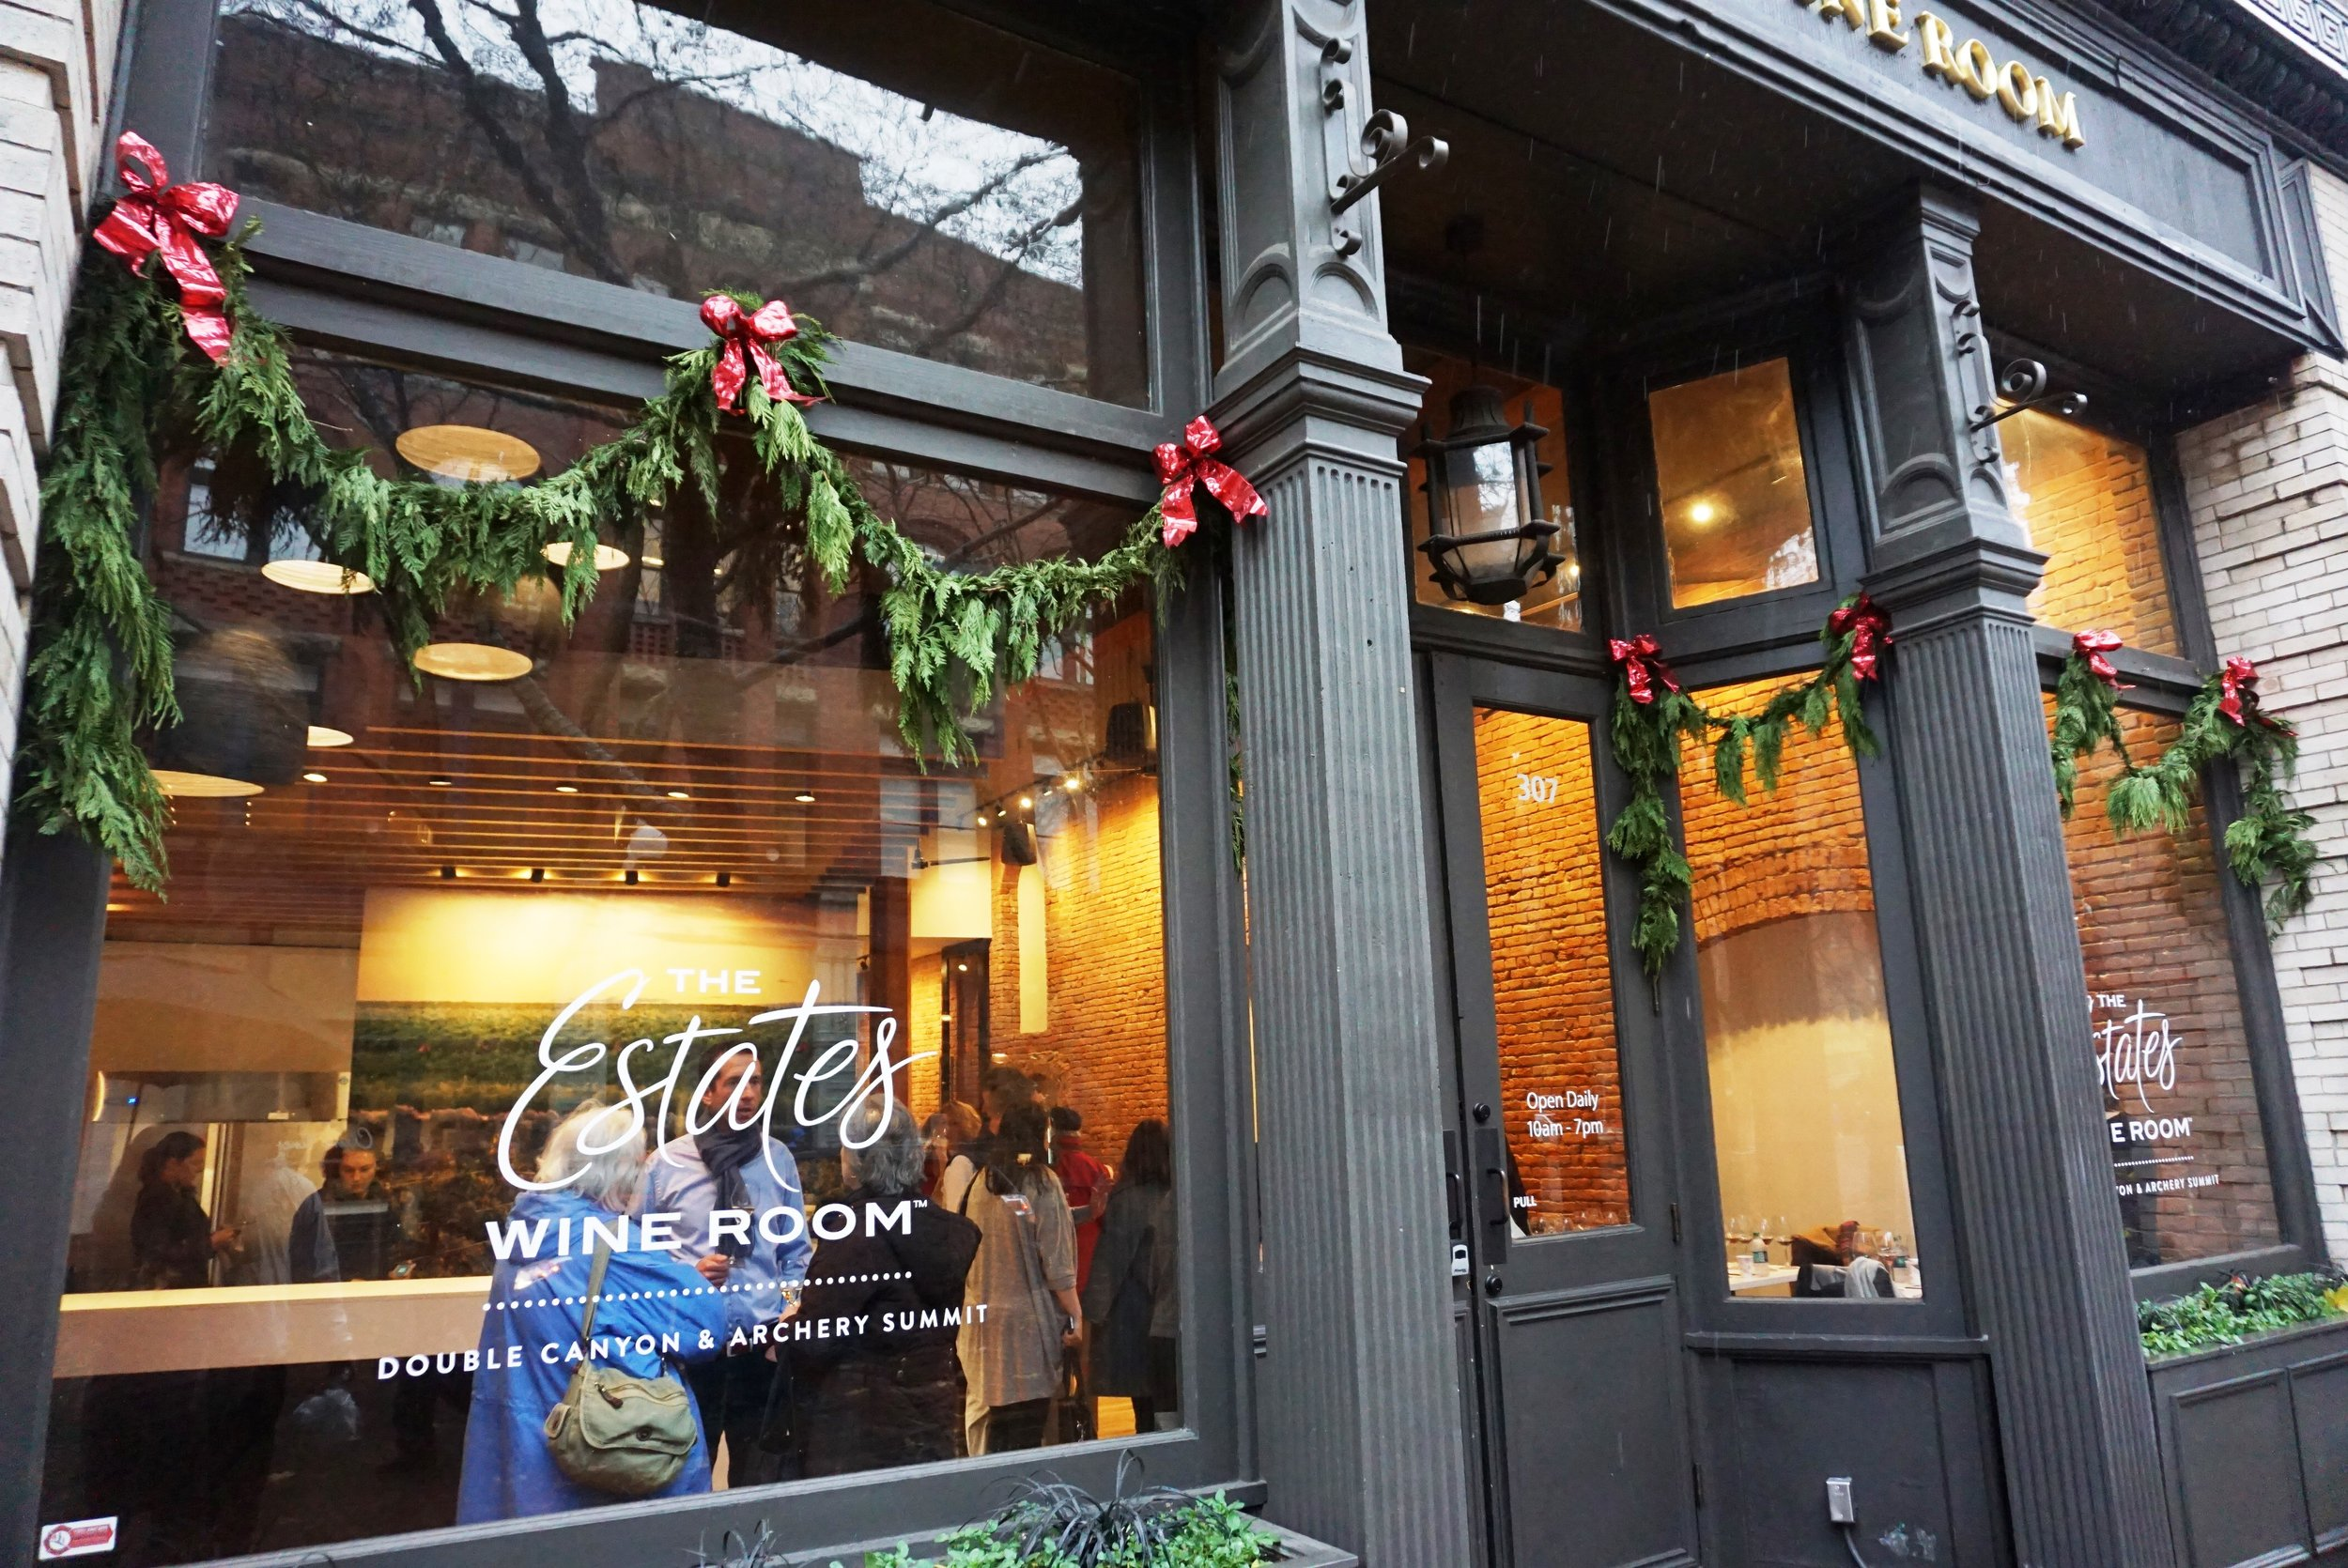 The Estates Wine Room opened in Seattle's Pioneer Square on Friday, December 11th